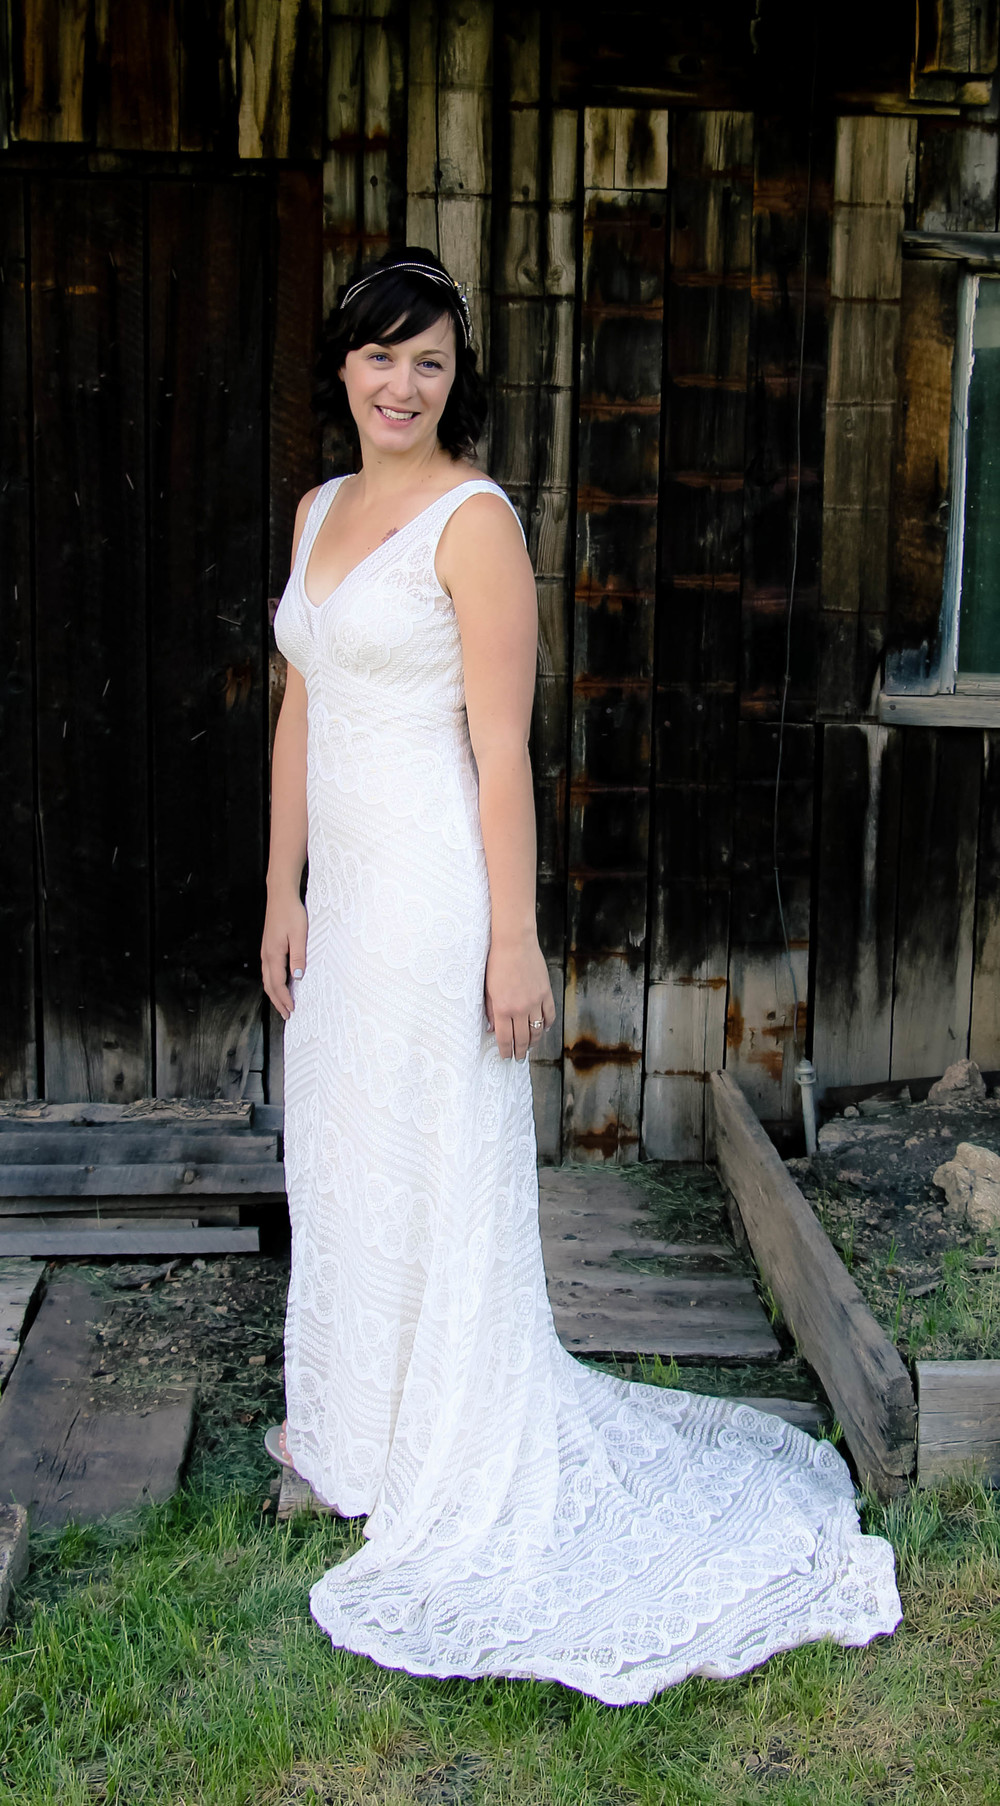 Kimberly_Eric_Mountain_Town_Wedding_1.jpg